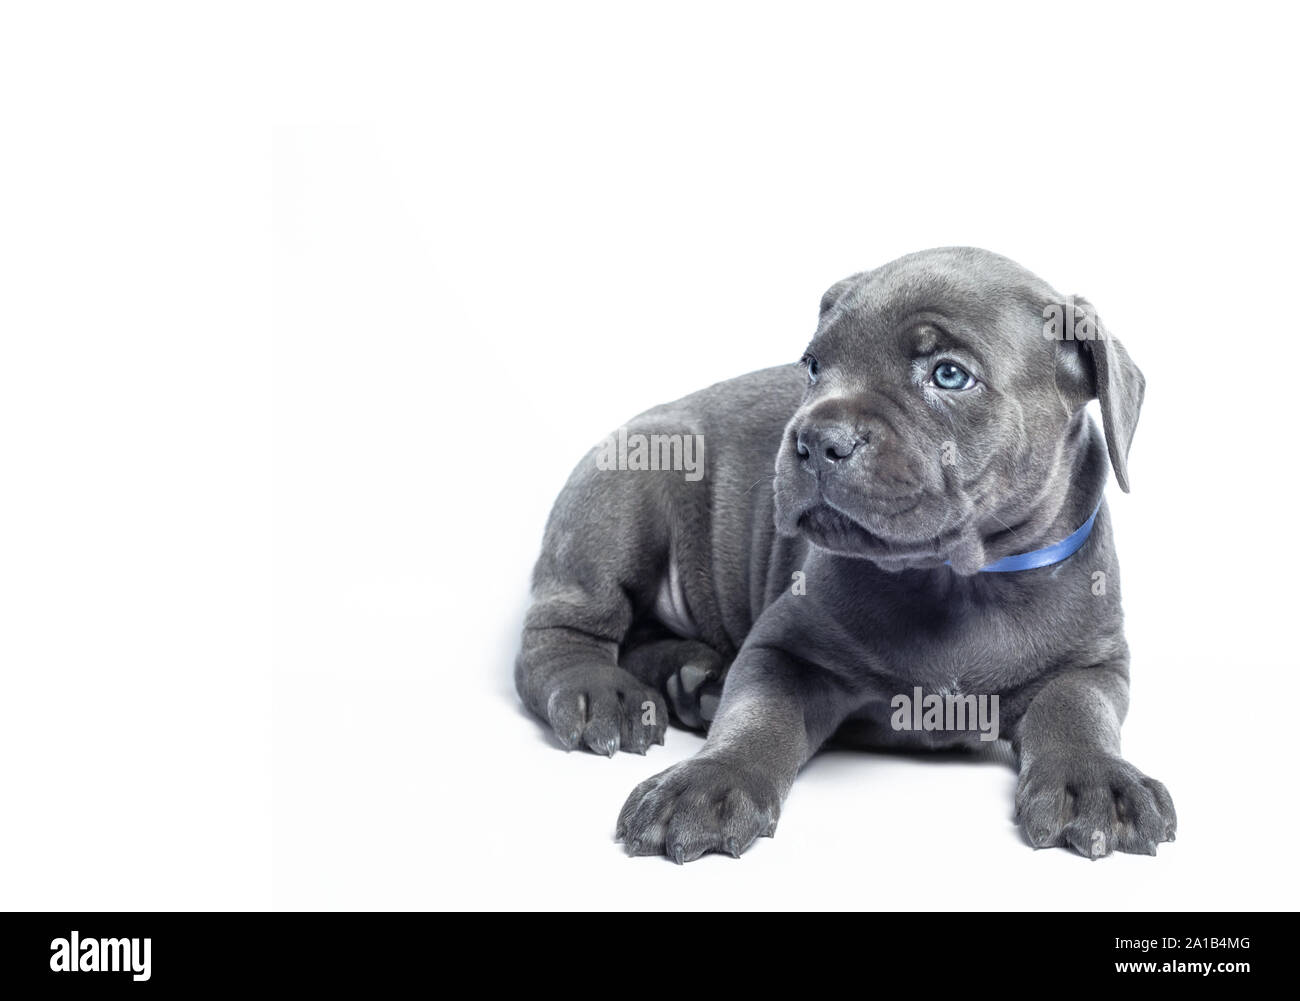 Little Puppy Dog Of Breed Canecorso On A White Background In Isolation Closeup Stock Photo Alamy